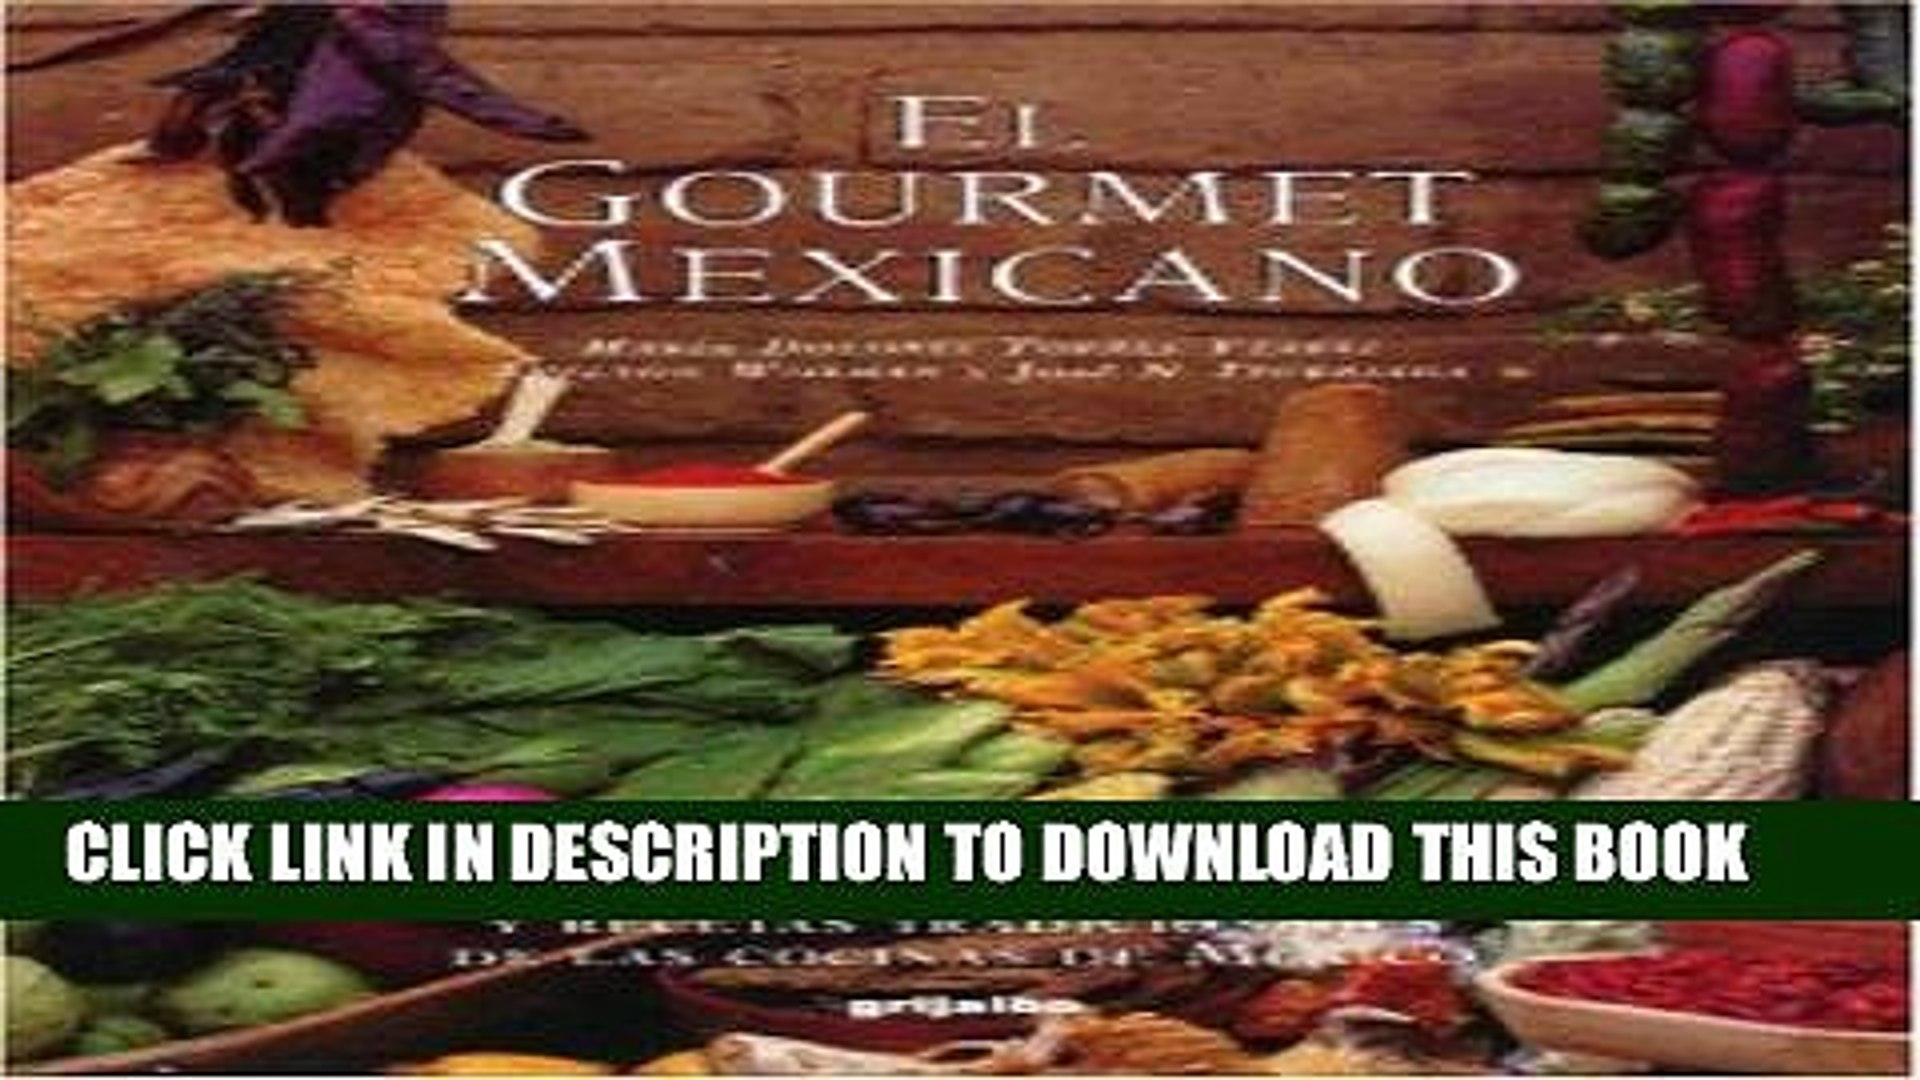 Best Seller El Gourmet Mexicano (Spanish Edition) Free Read